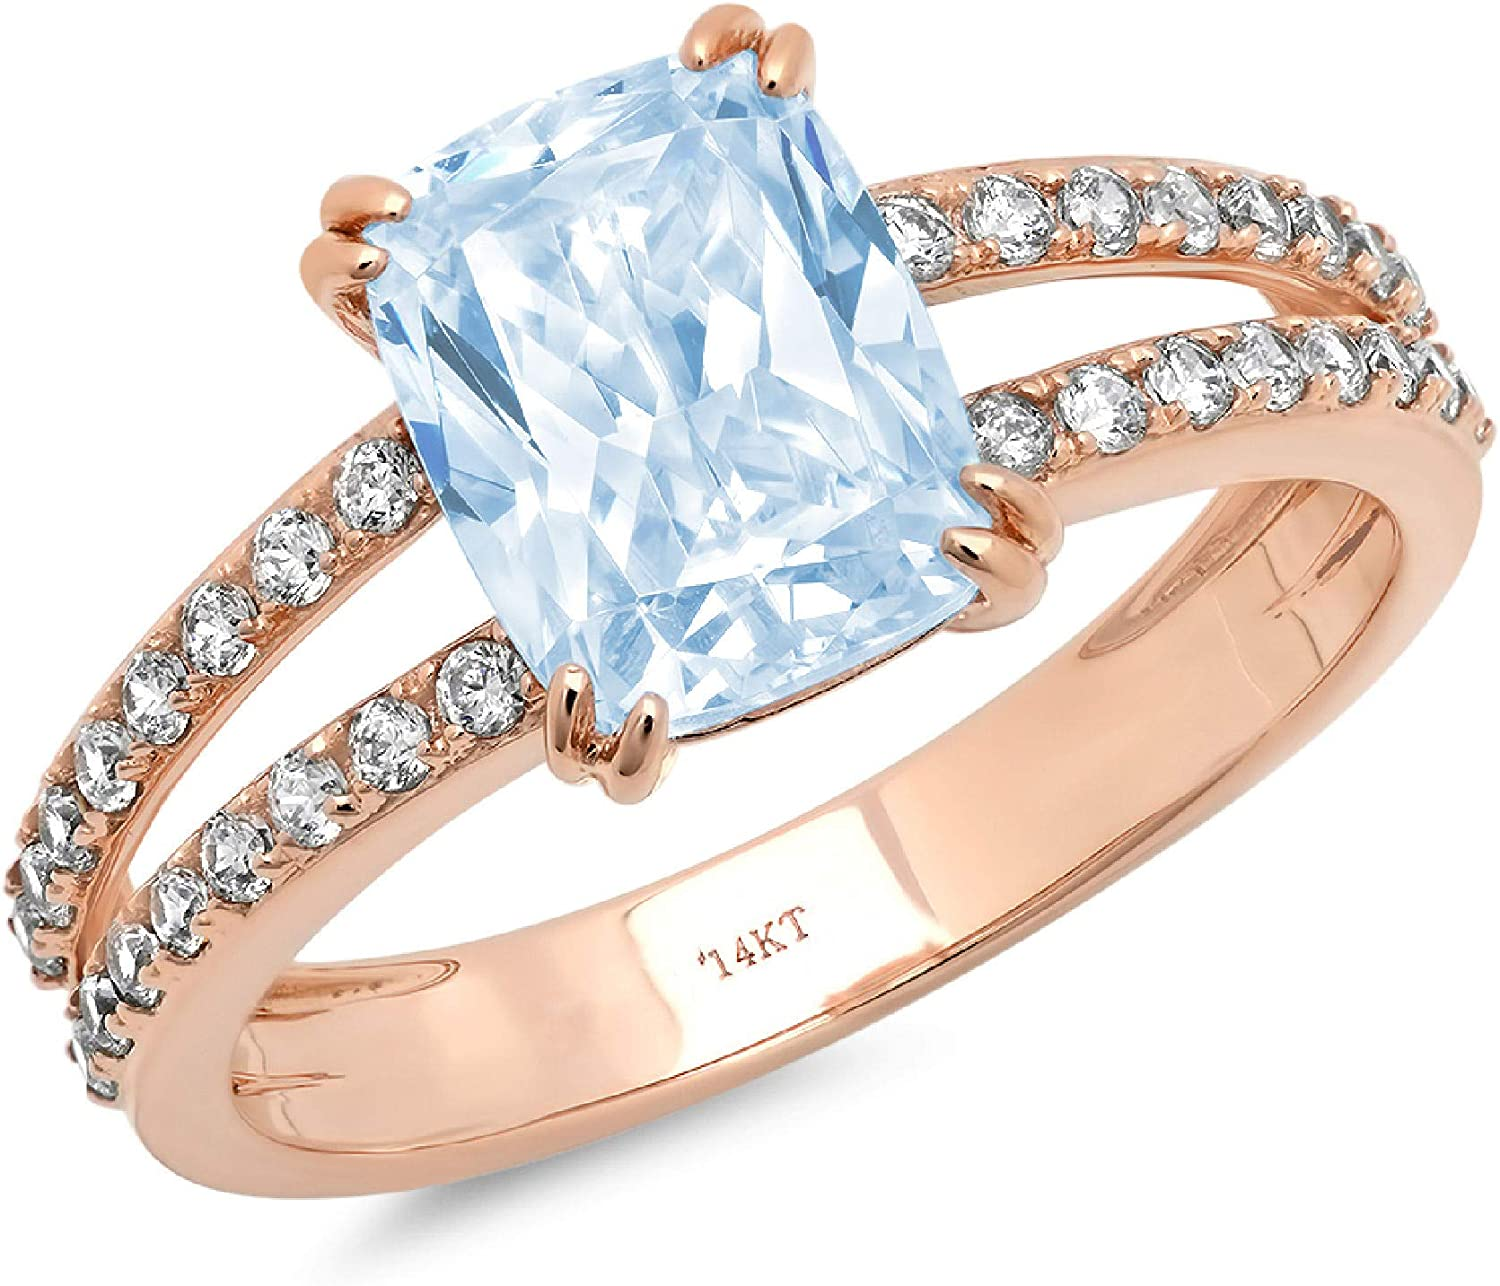 Clara Pucci 3.6 ct Cushion Accent Cut Genuine Stunning Limited price Sacramento Mall Solitaire